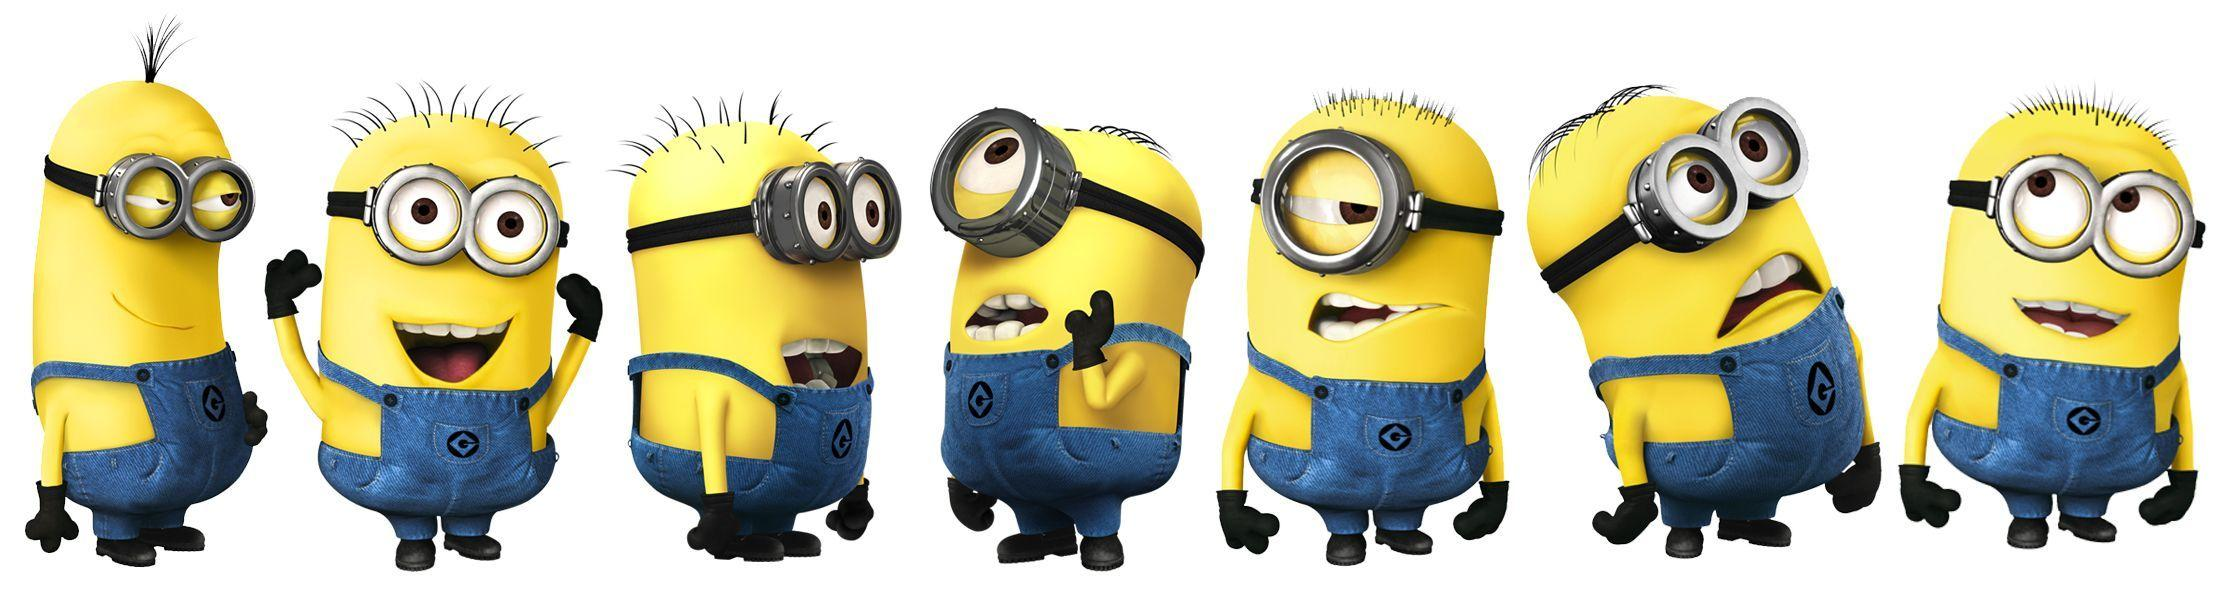 Images For > Minion Wallpaper